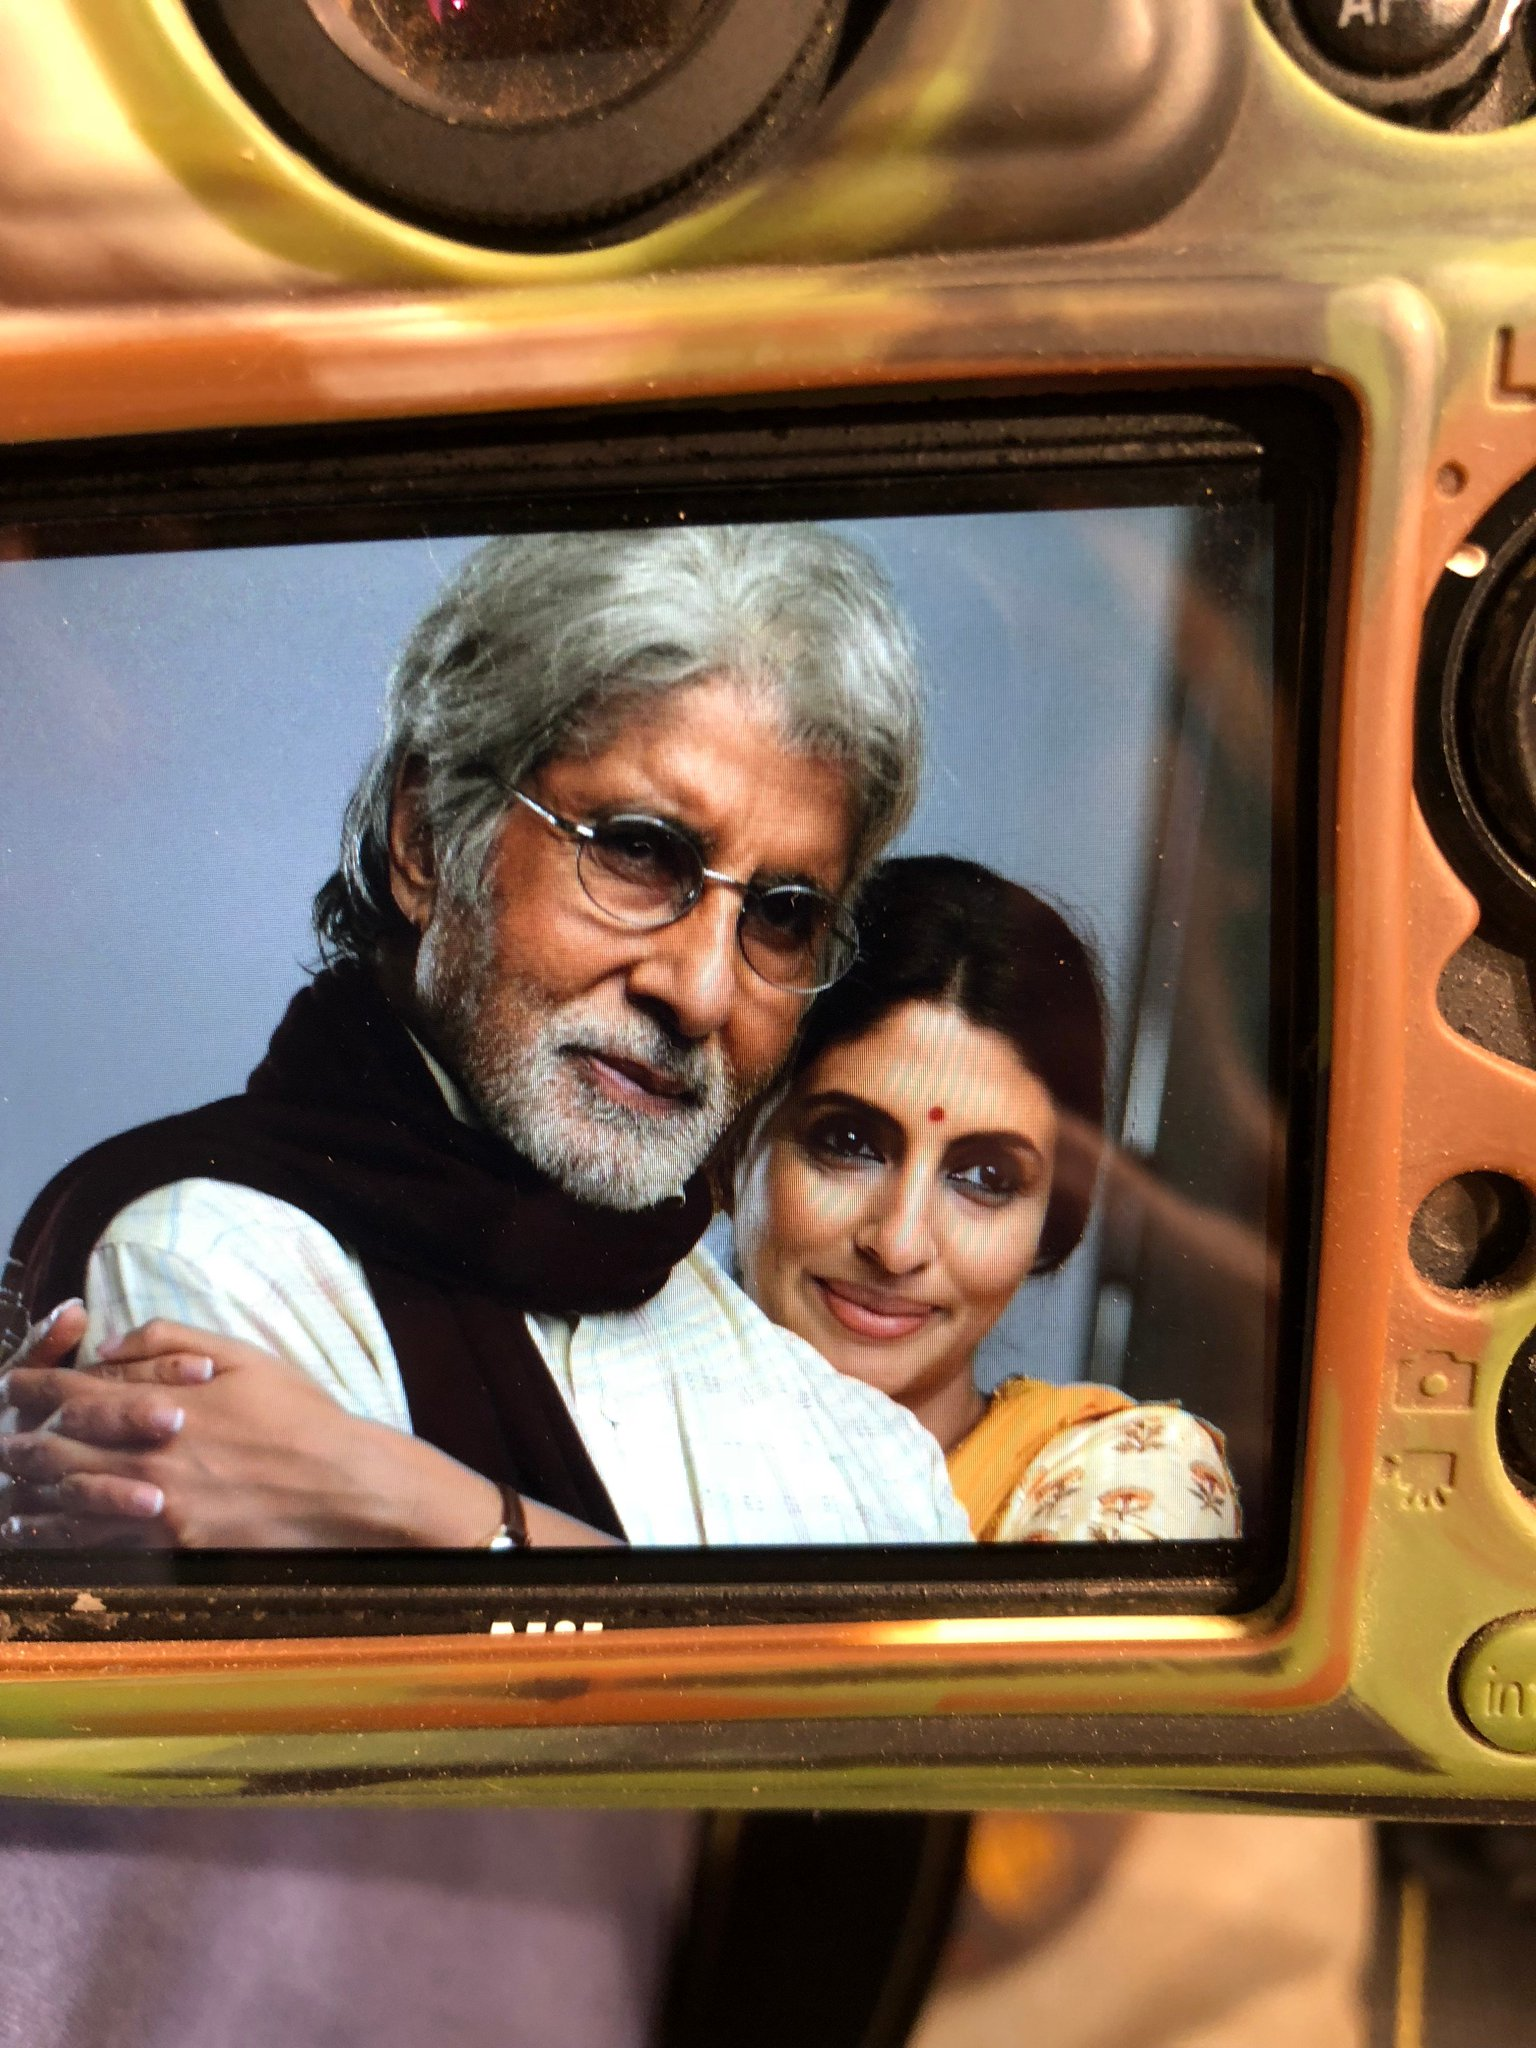 T 2812 - Daughters be the best .. !! https://t.co/hED4fVEbqg